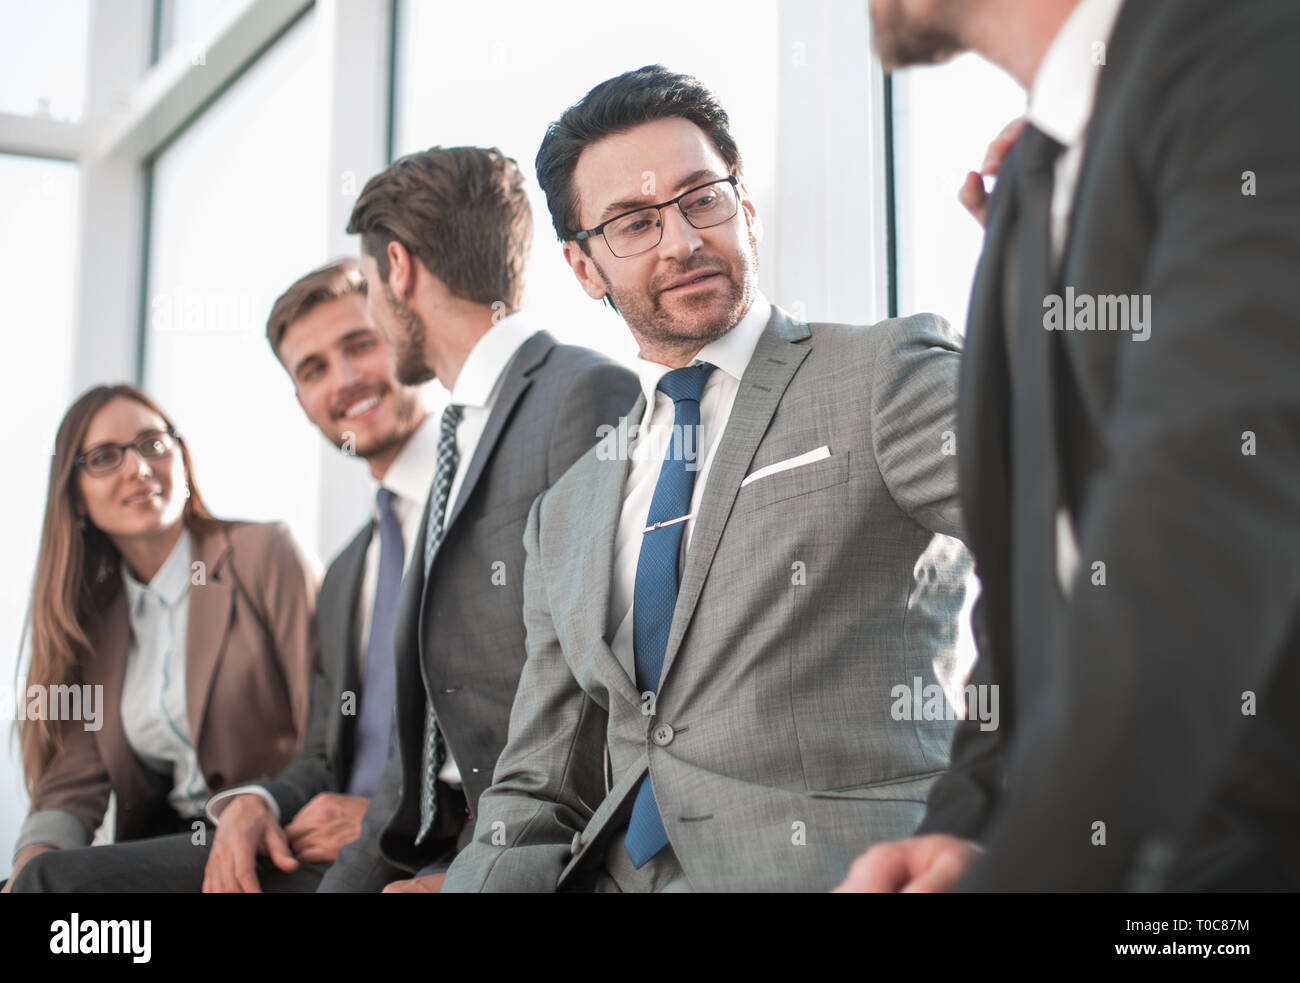 Business people working in an office - Stock Image